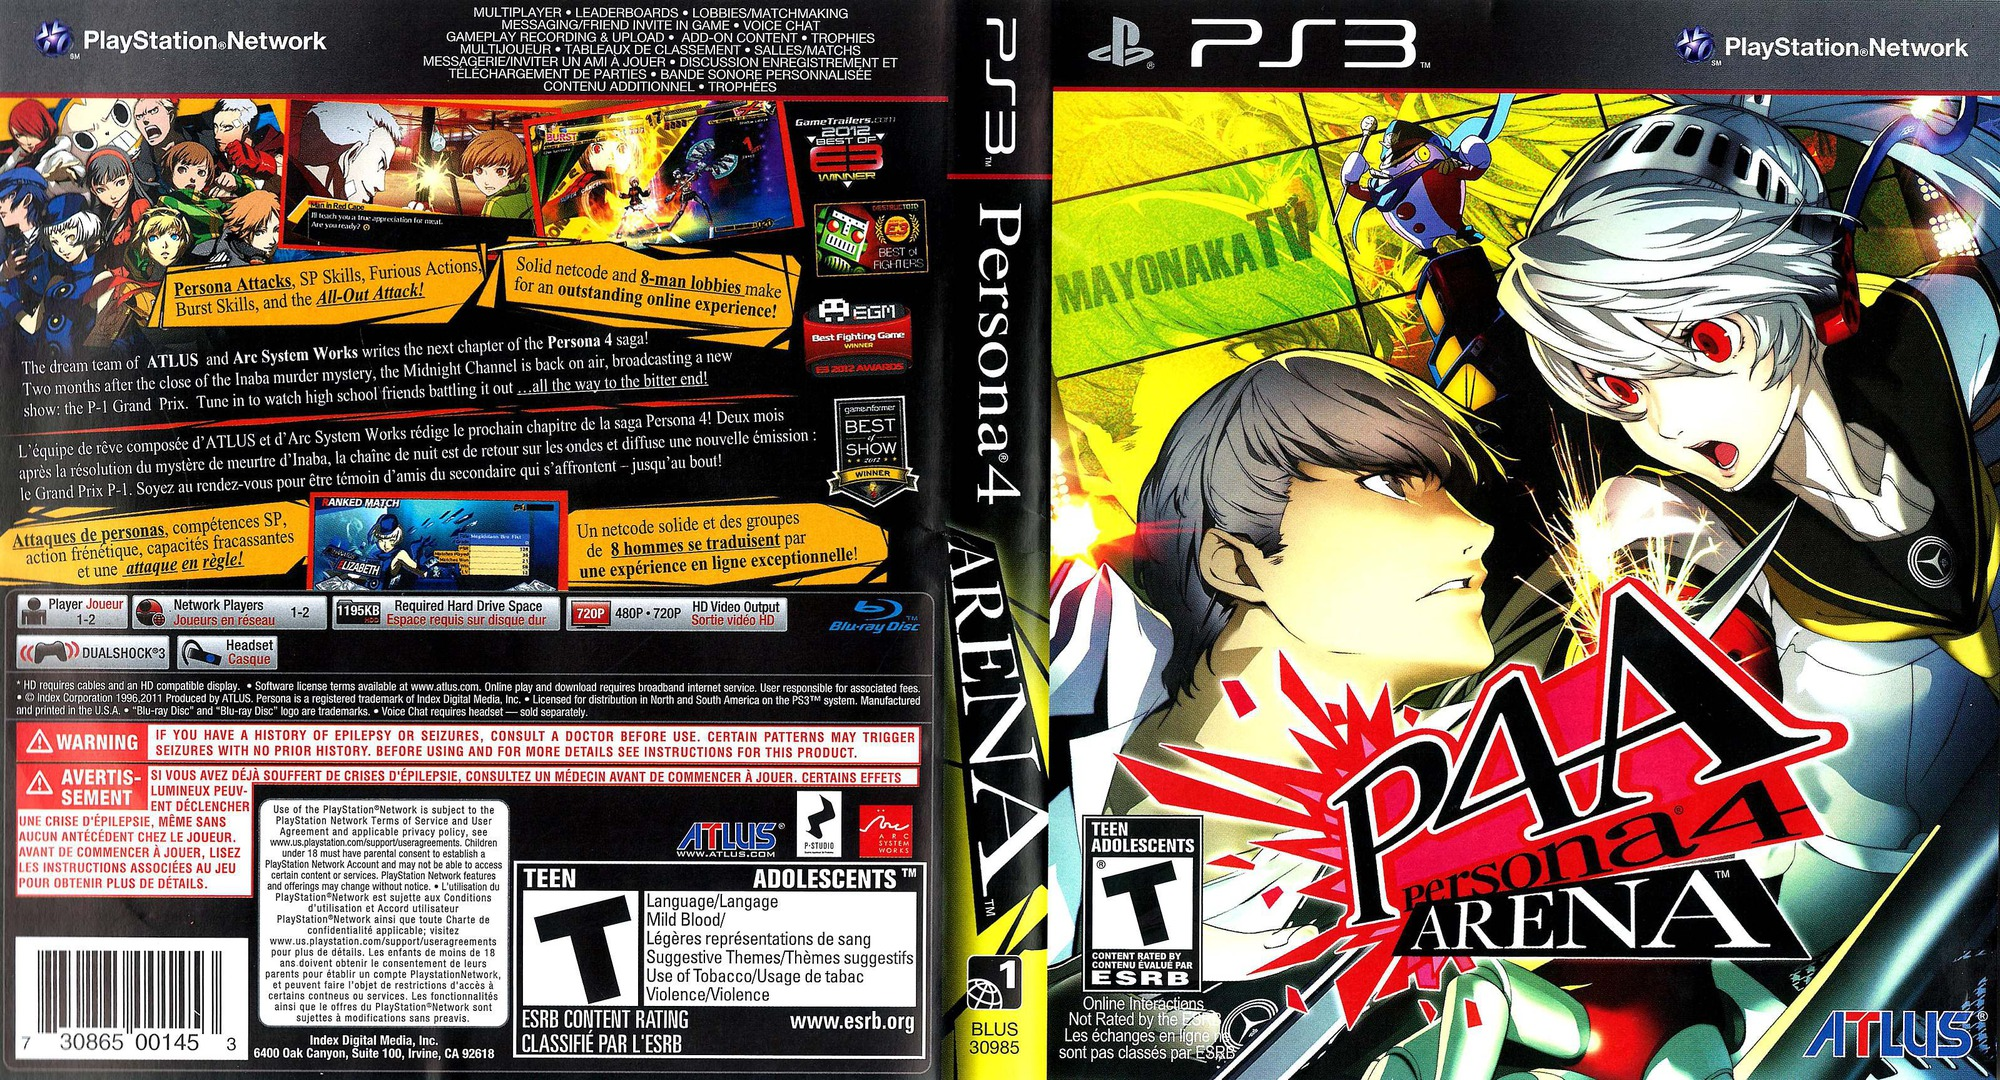 Persona 4 Arena PS3 coverfullHQ (BLUS30985)